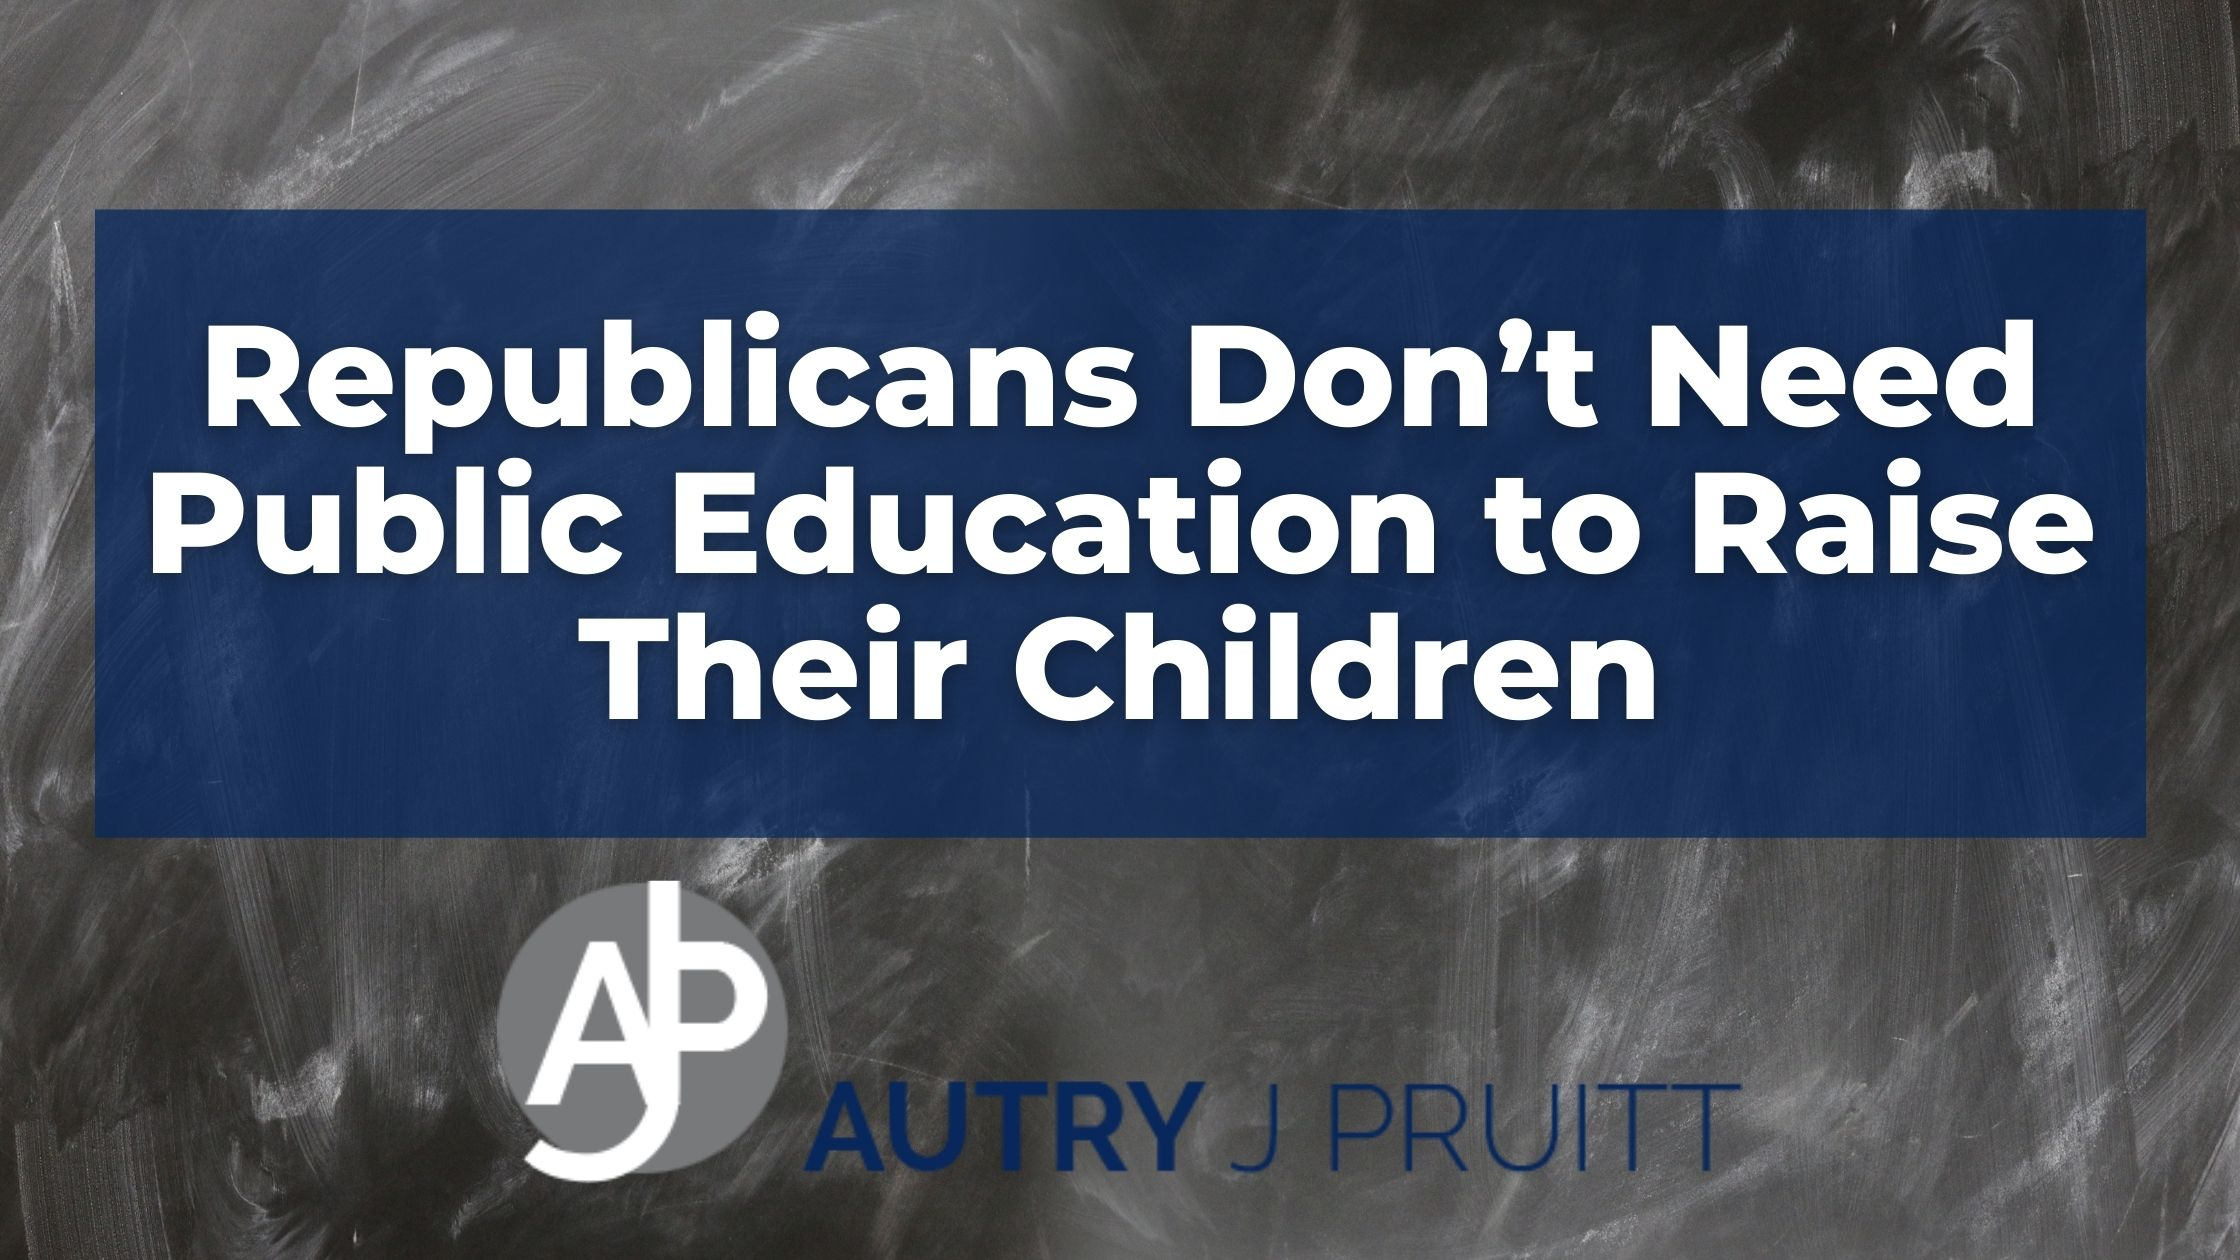 Republicans Don't Need Public Education to Raise Their Children